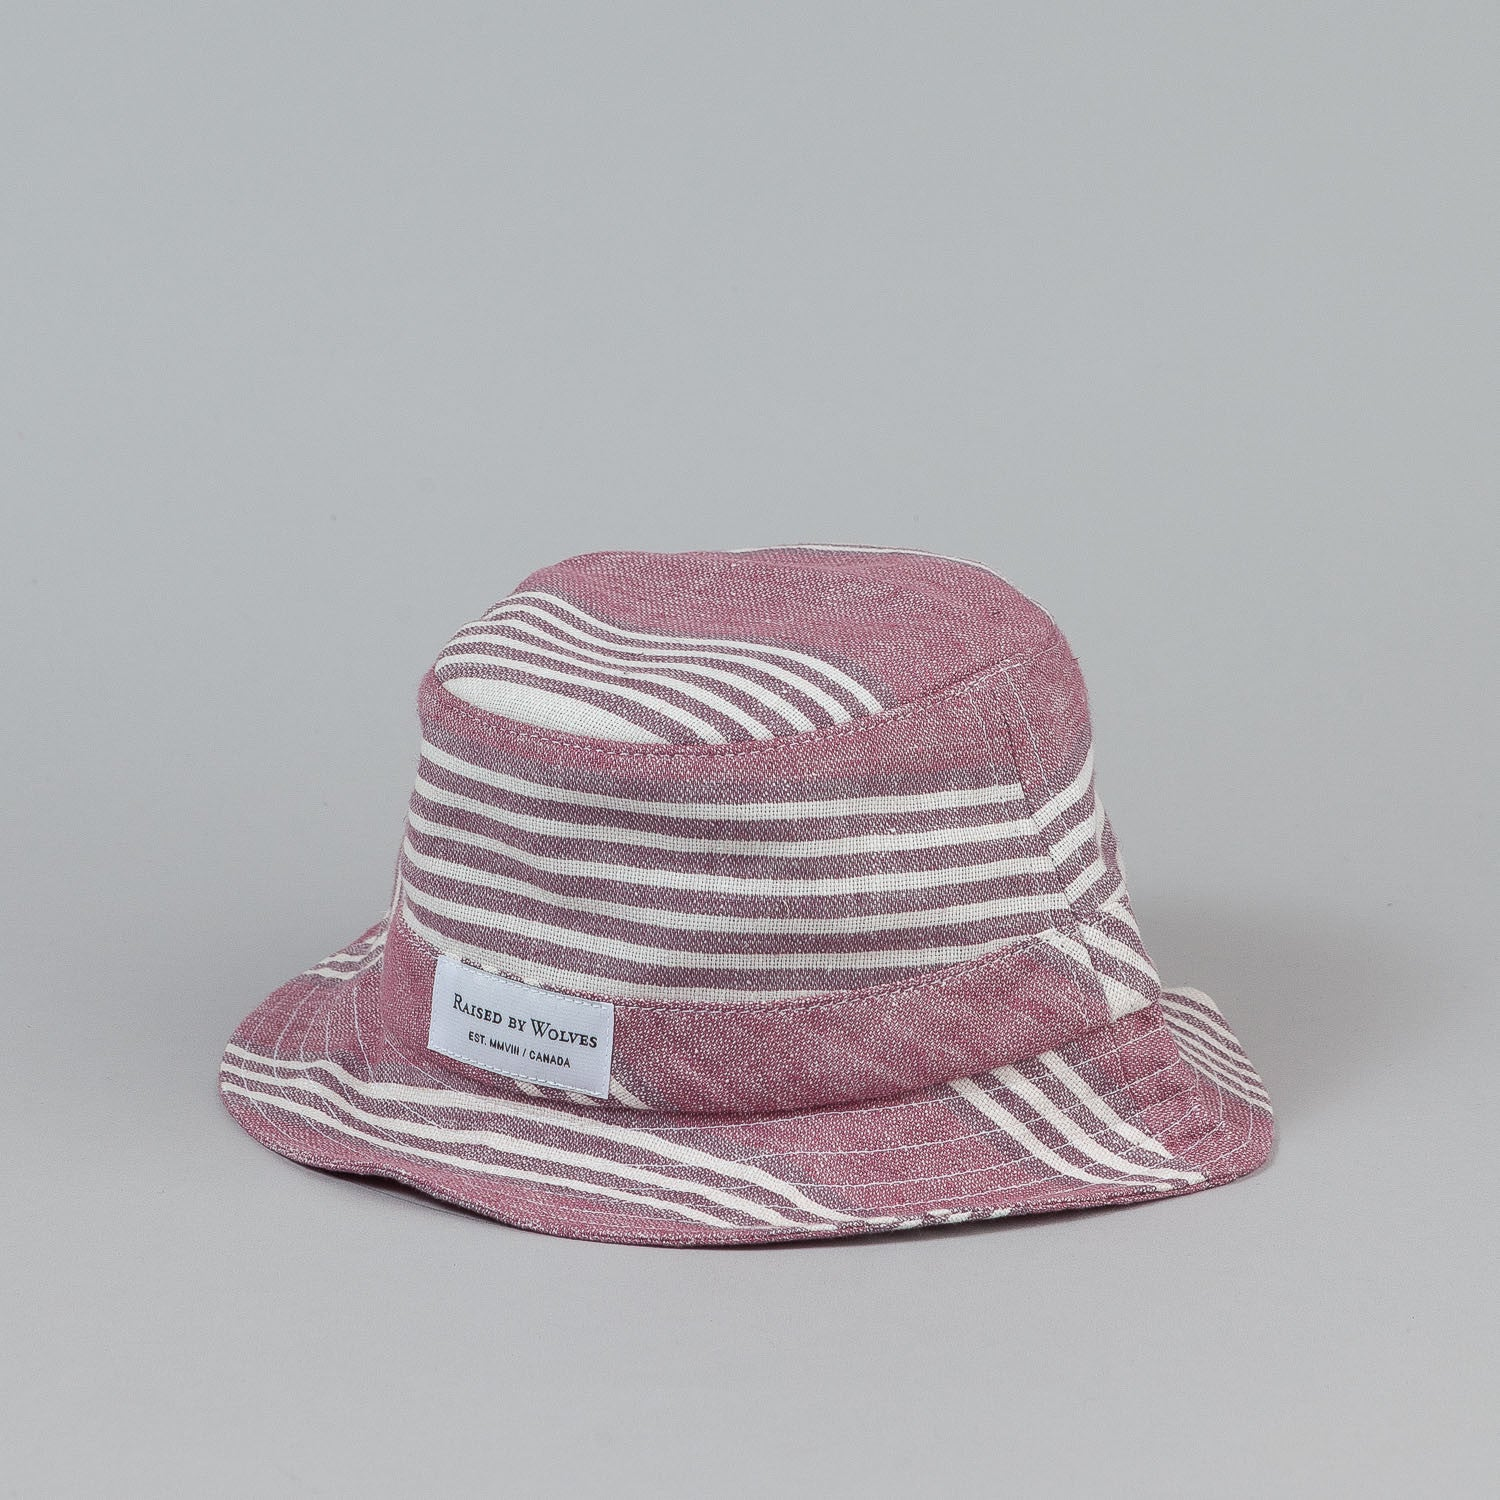 Raised By Wolves Gatineau Bucket Hat